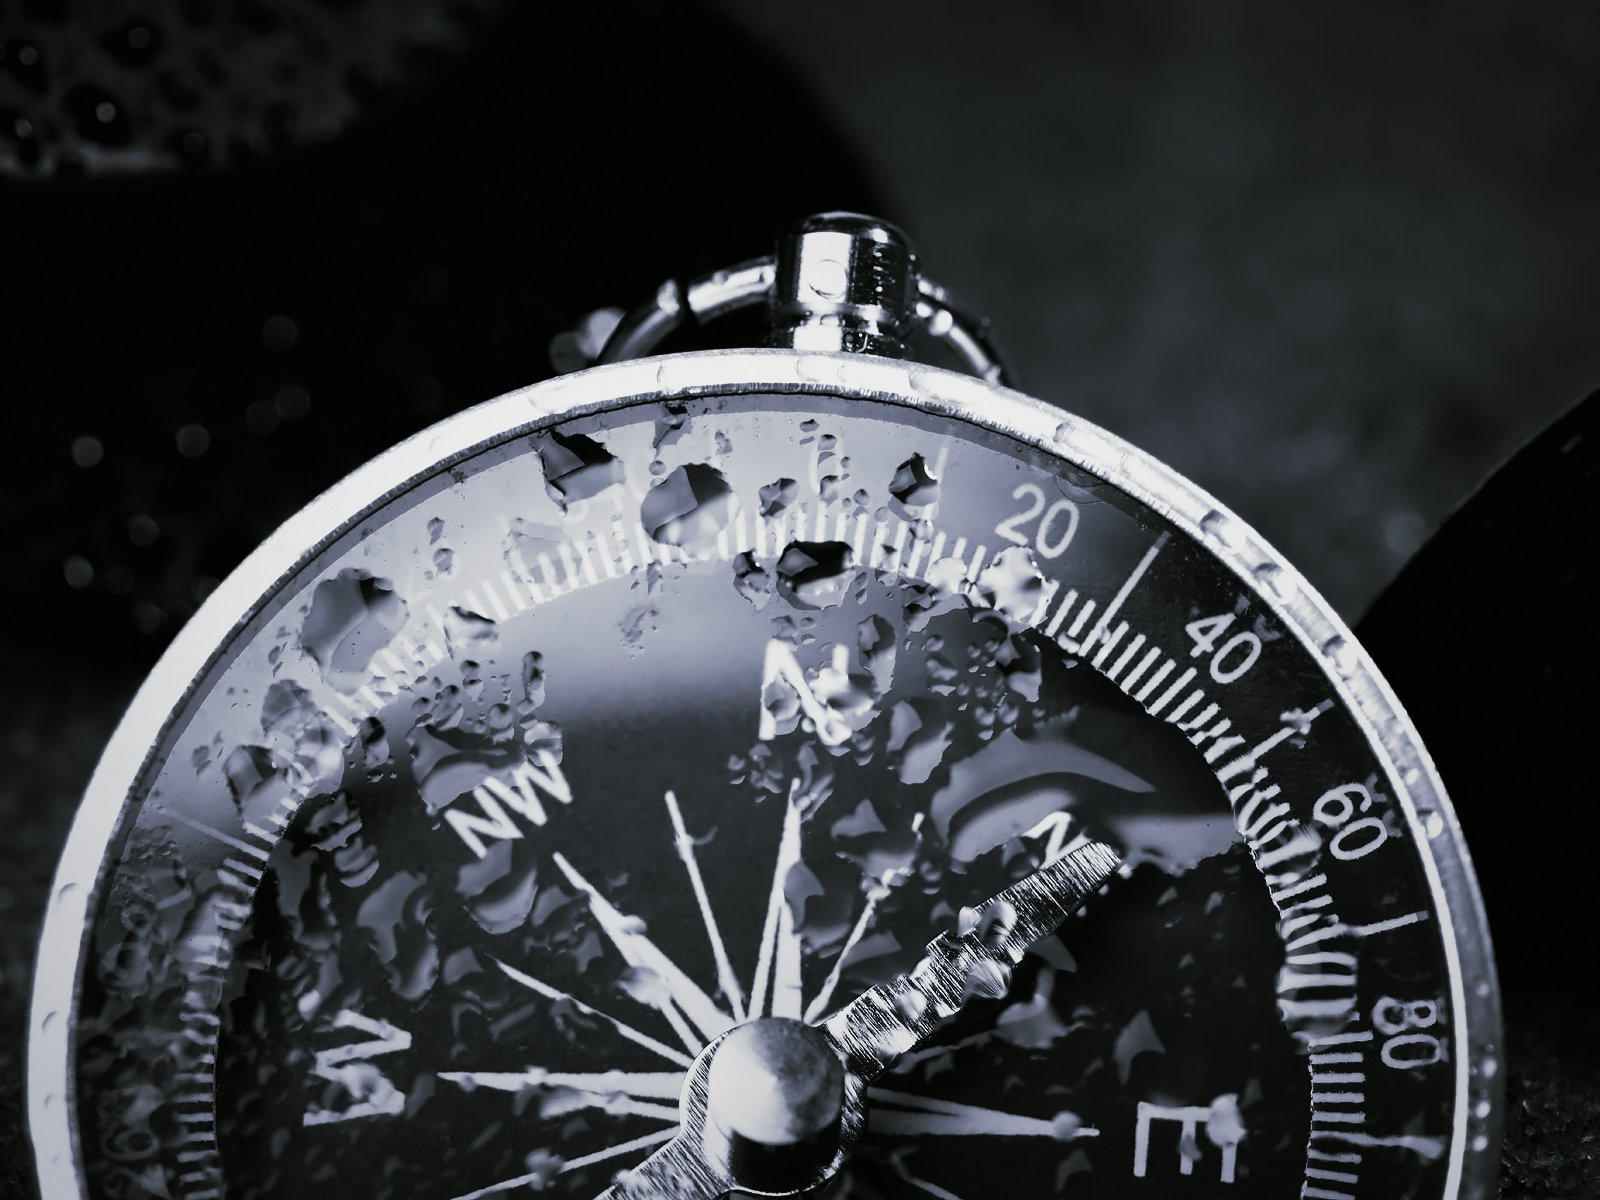 Compass Wallpapers 31 images   DodoWallpaper 1600x1200